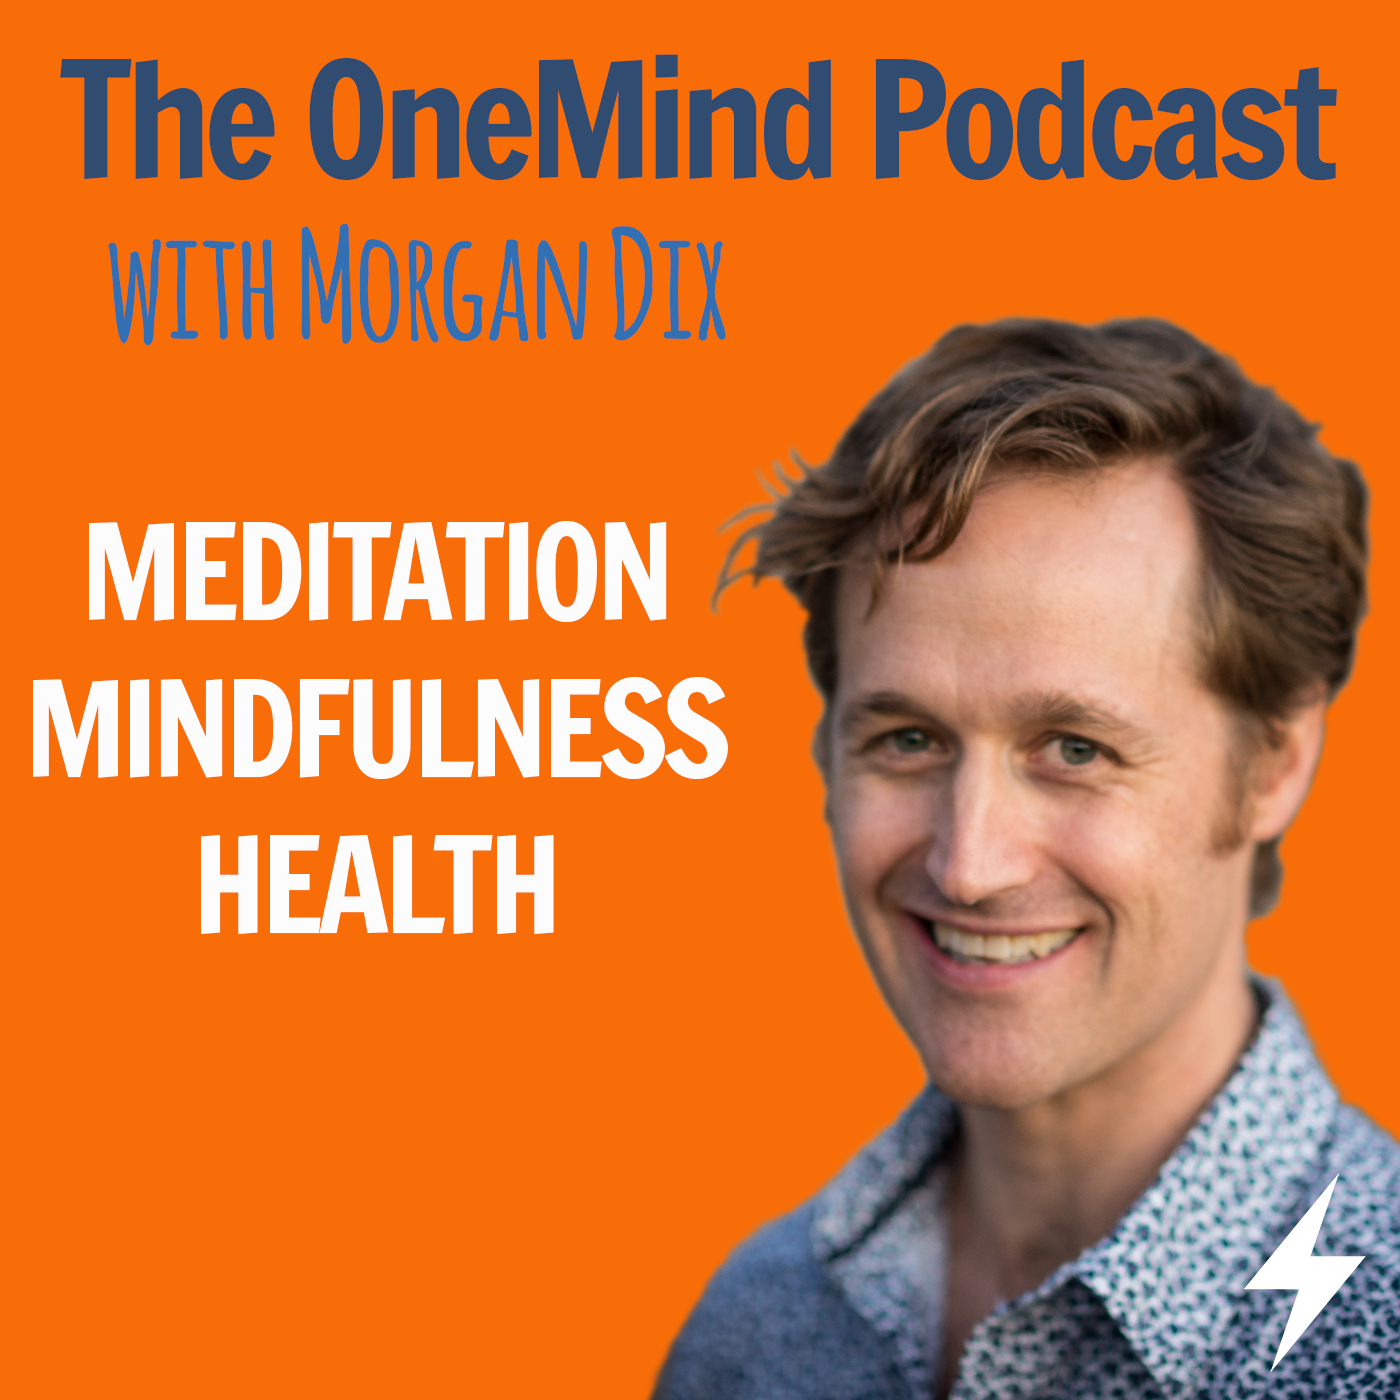 One Mind Podcast